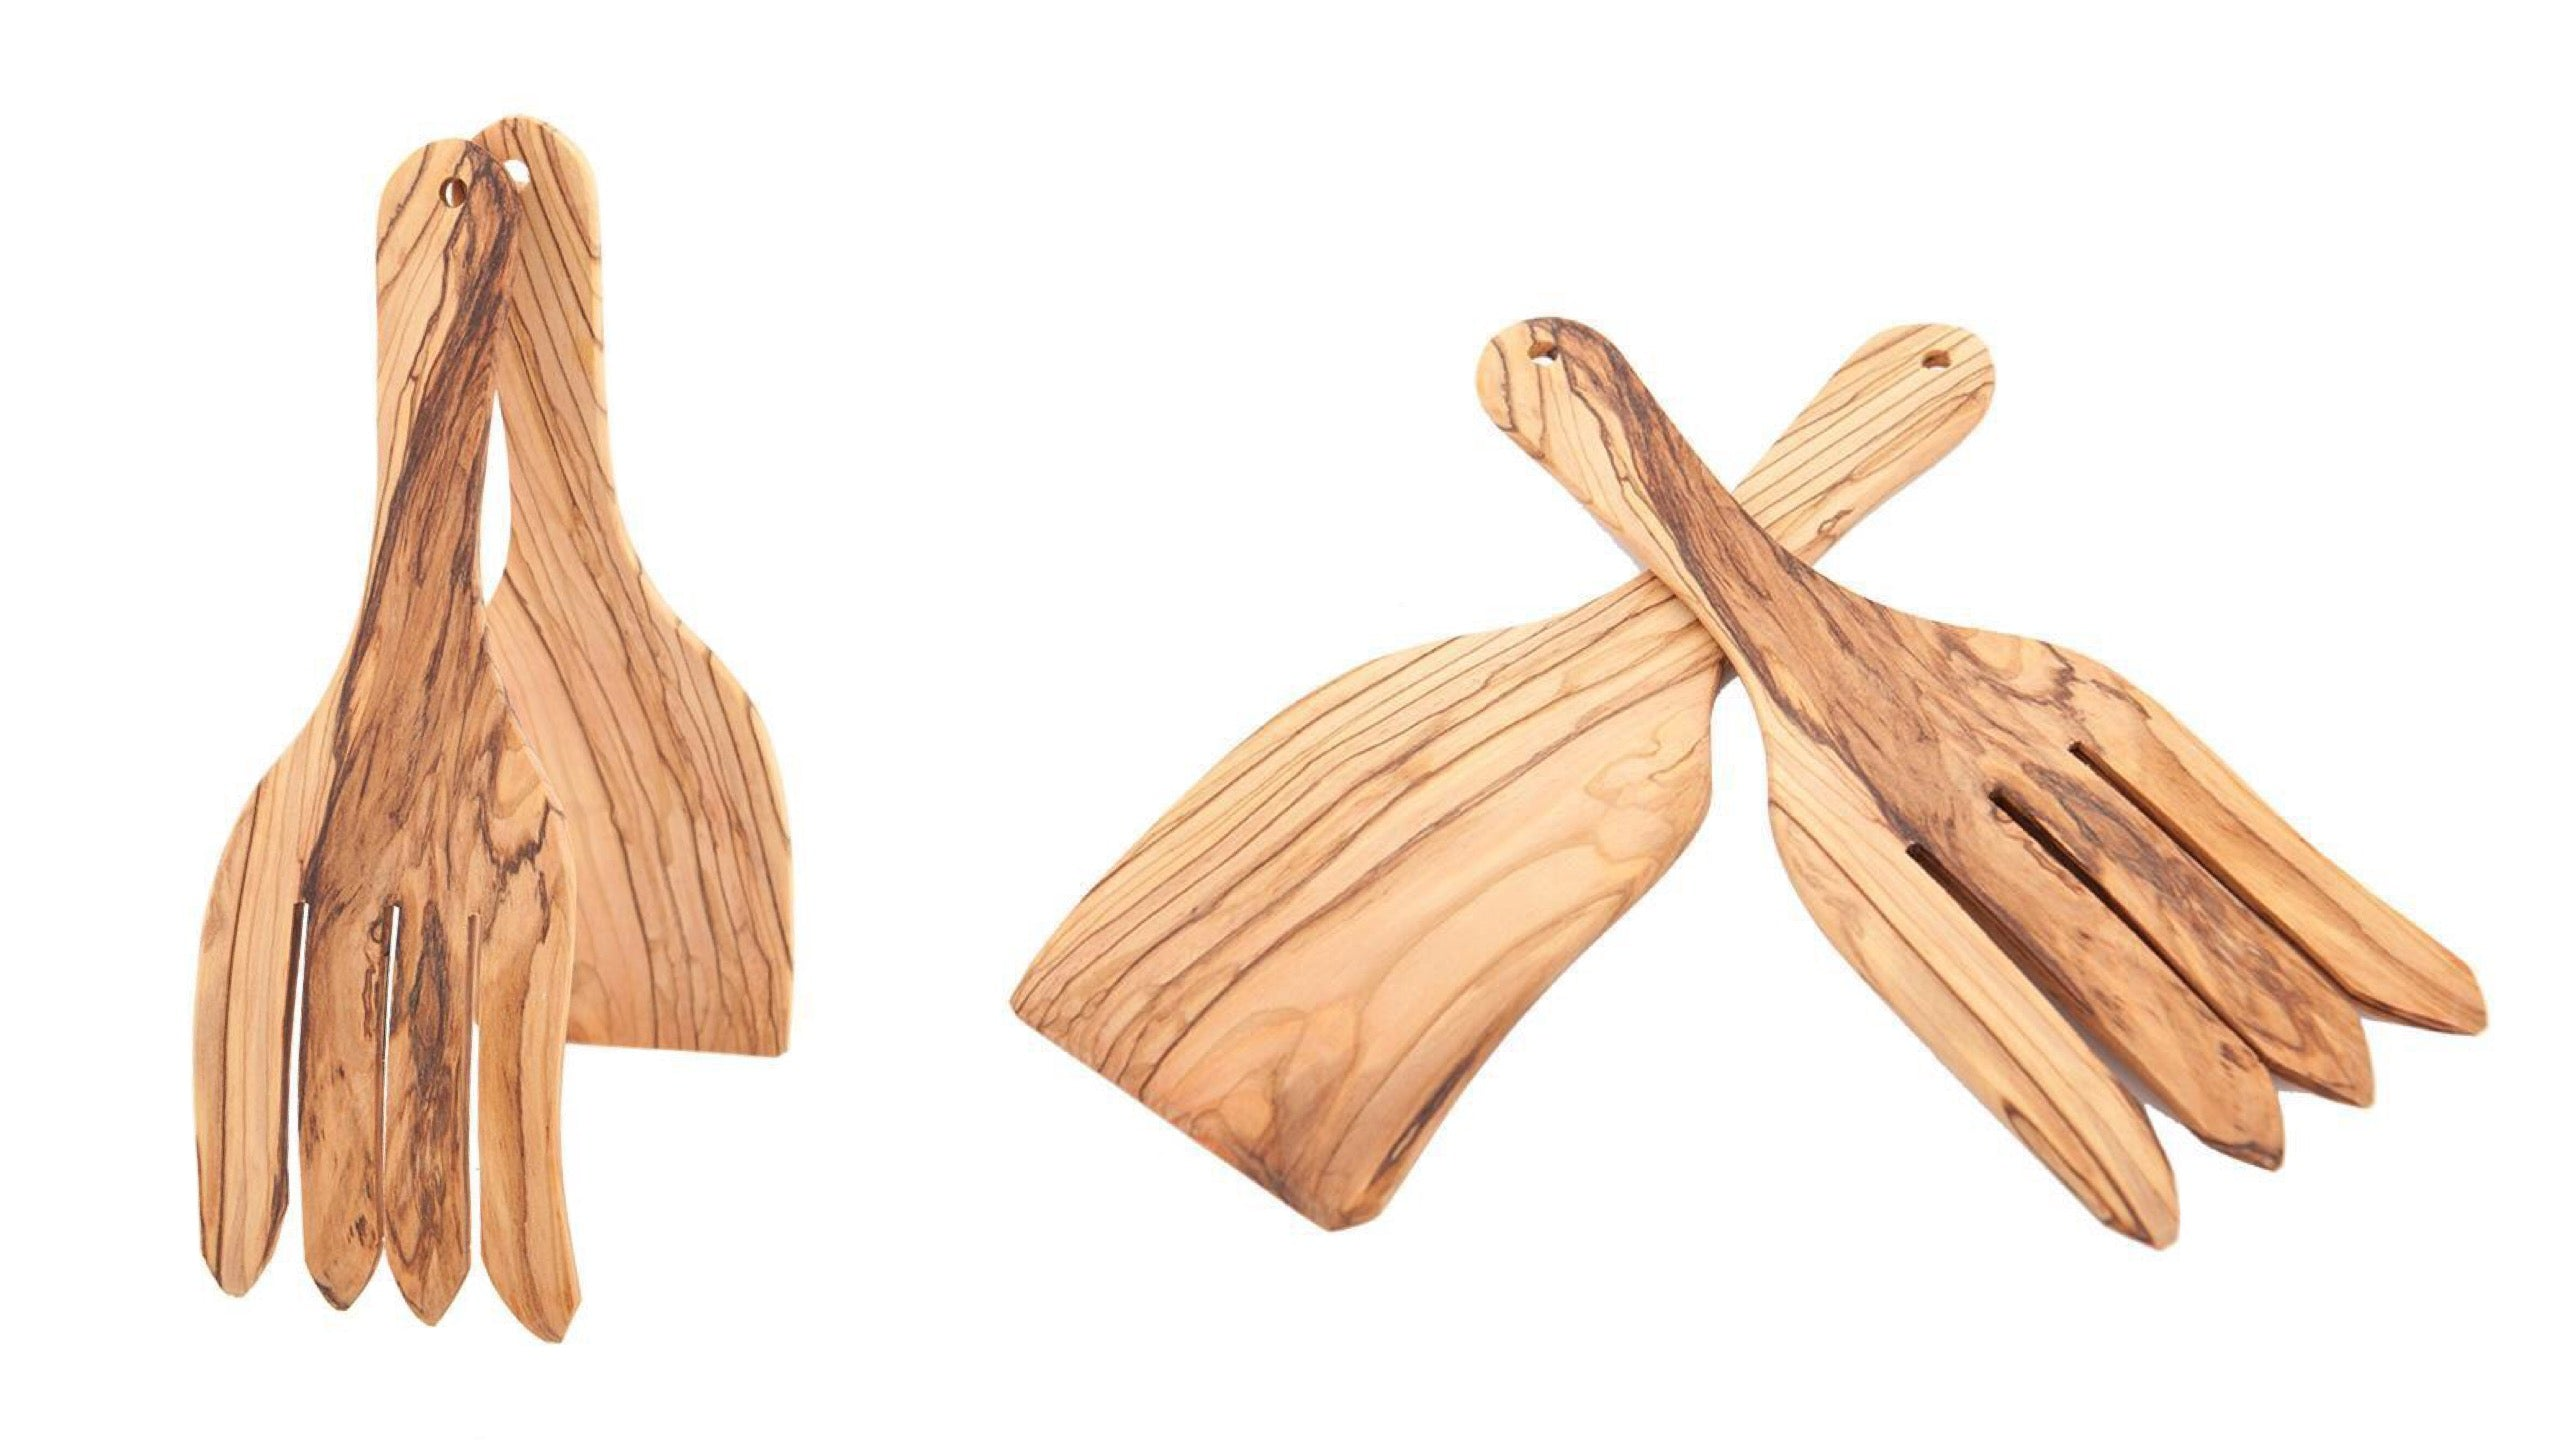 Olive Wood 2 Pieces Salad Serving Set (Fork and Spatula)